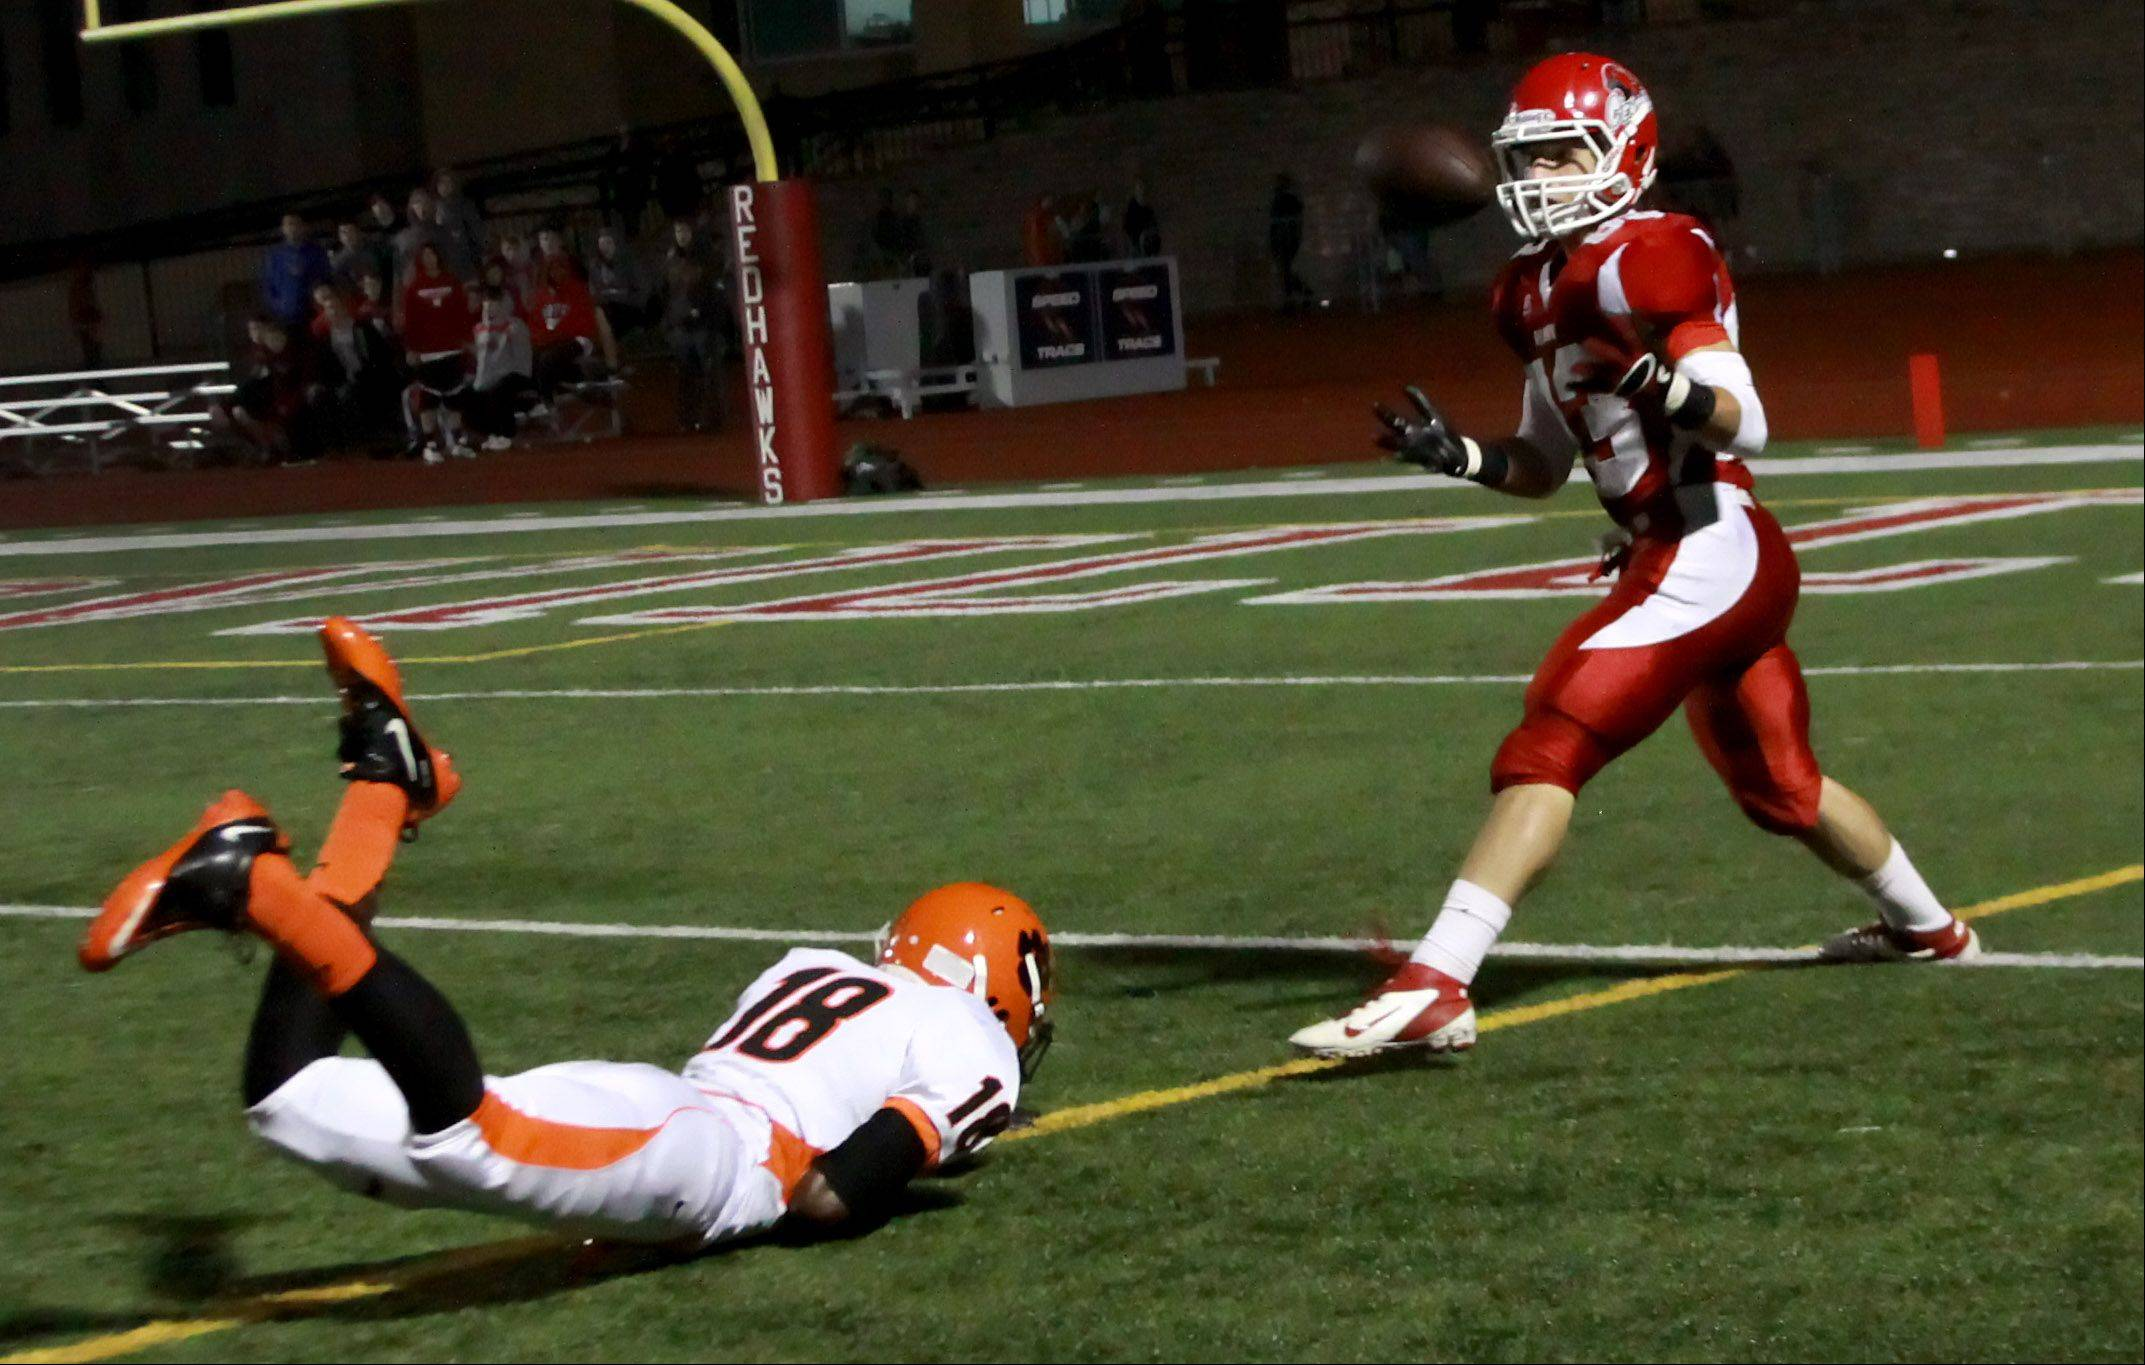 Ben Andreas of Naperville Central makes a catch for a touchdown.